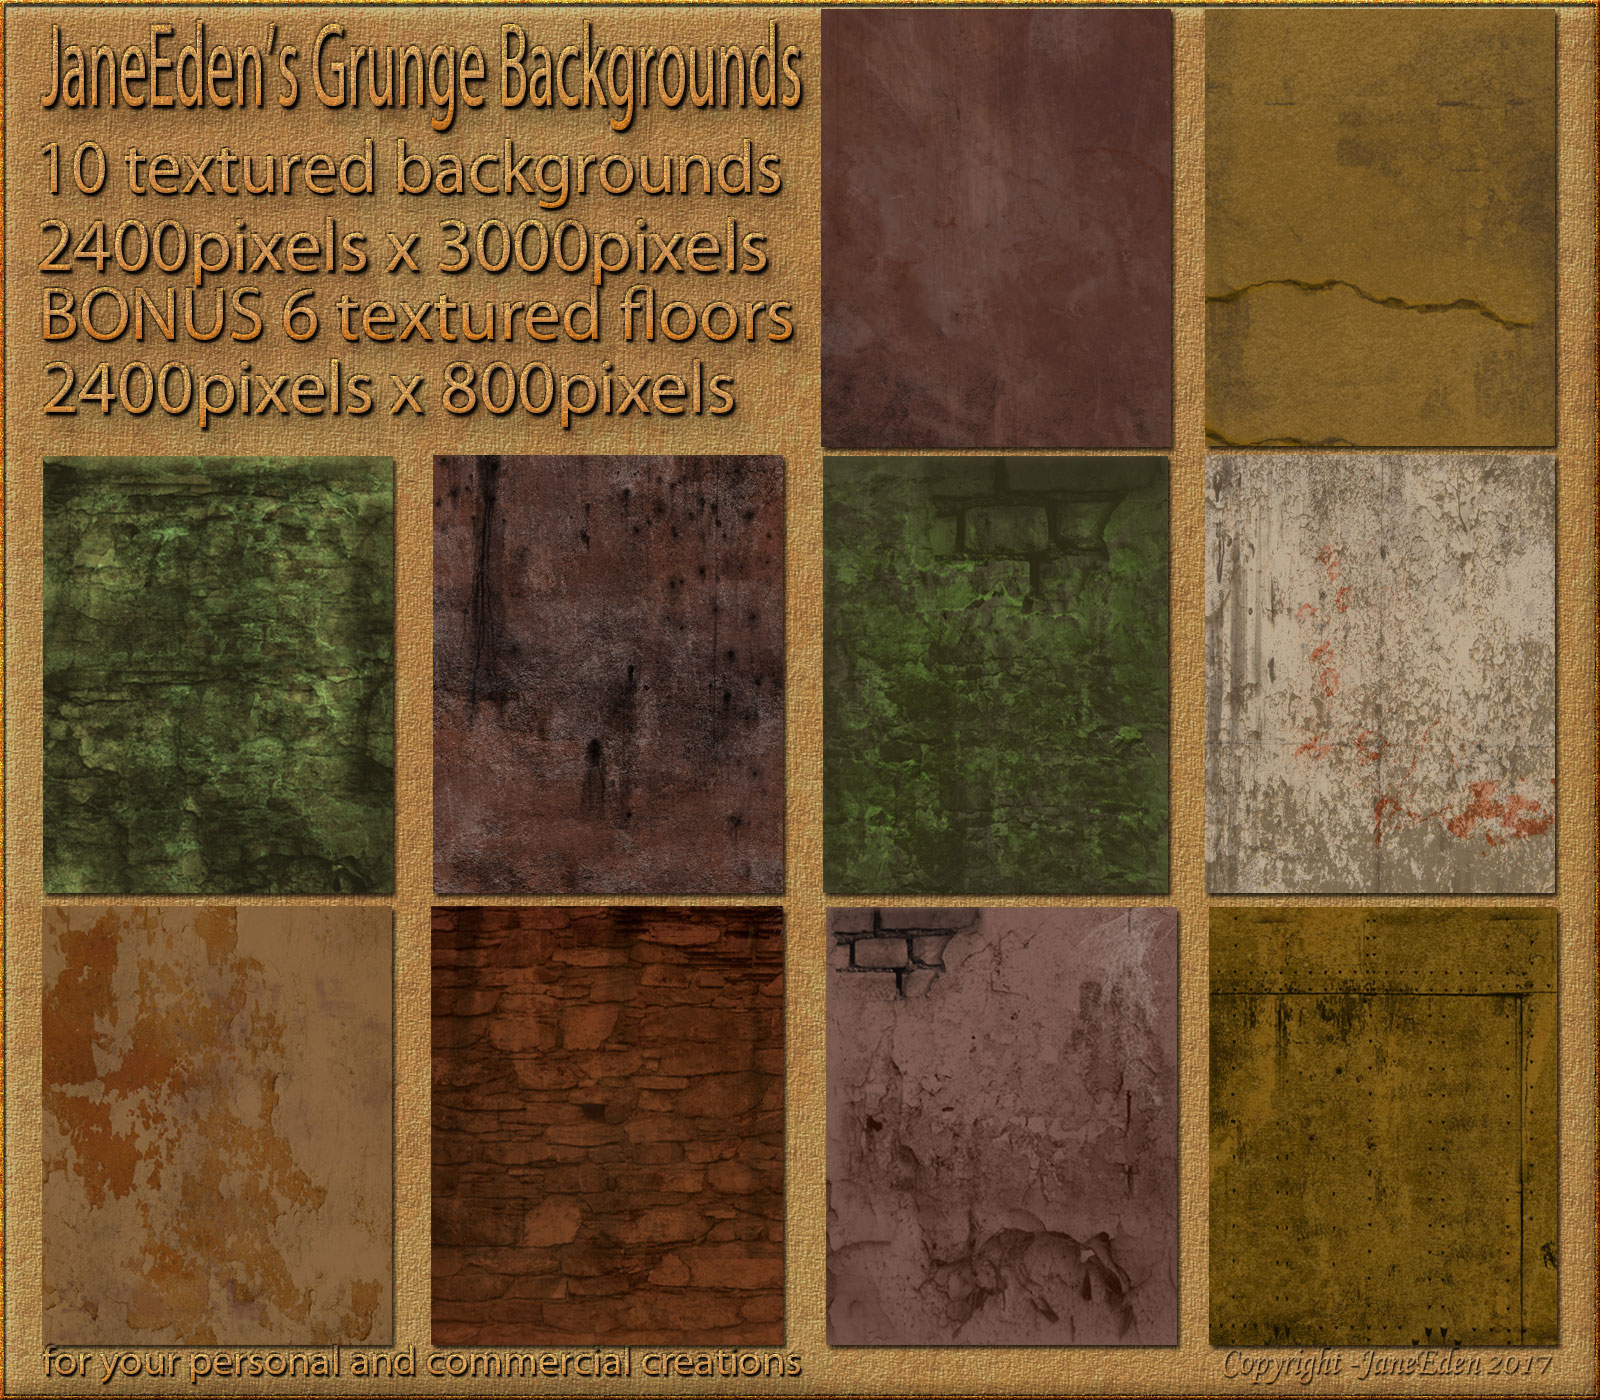 JaneEden's Grunge Backgrounds